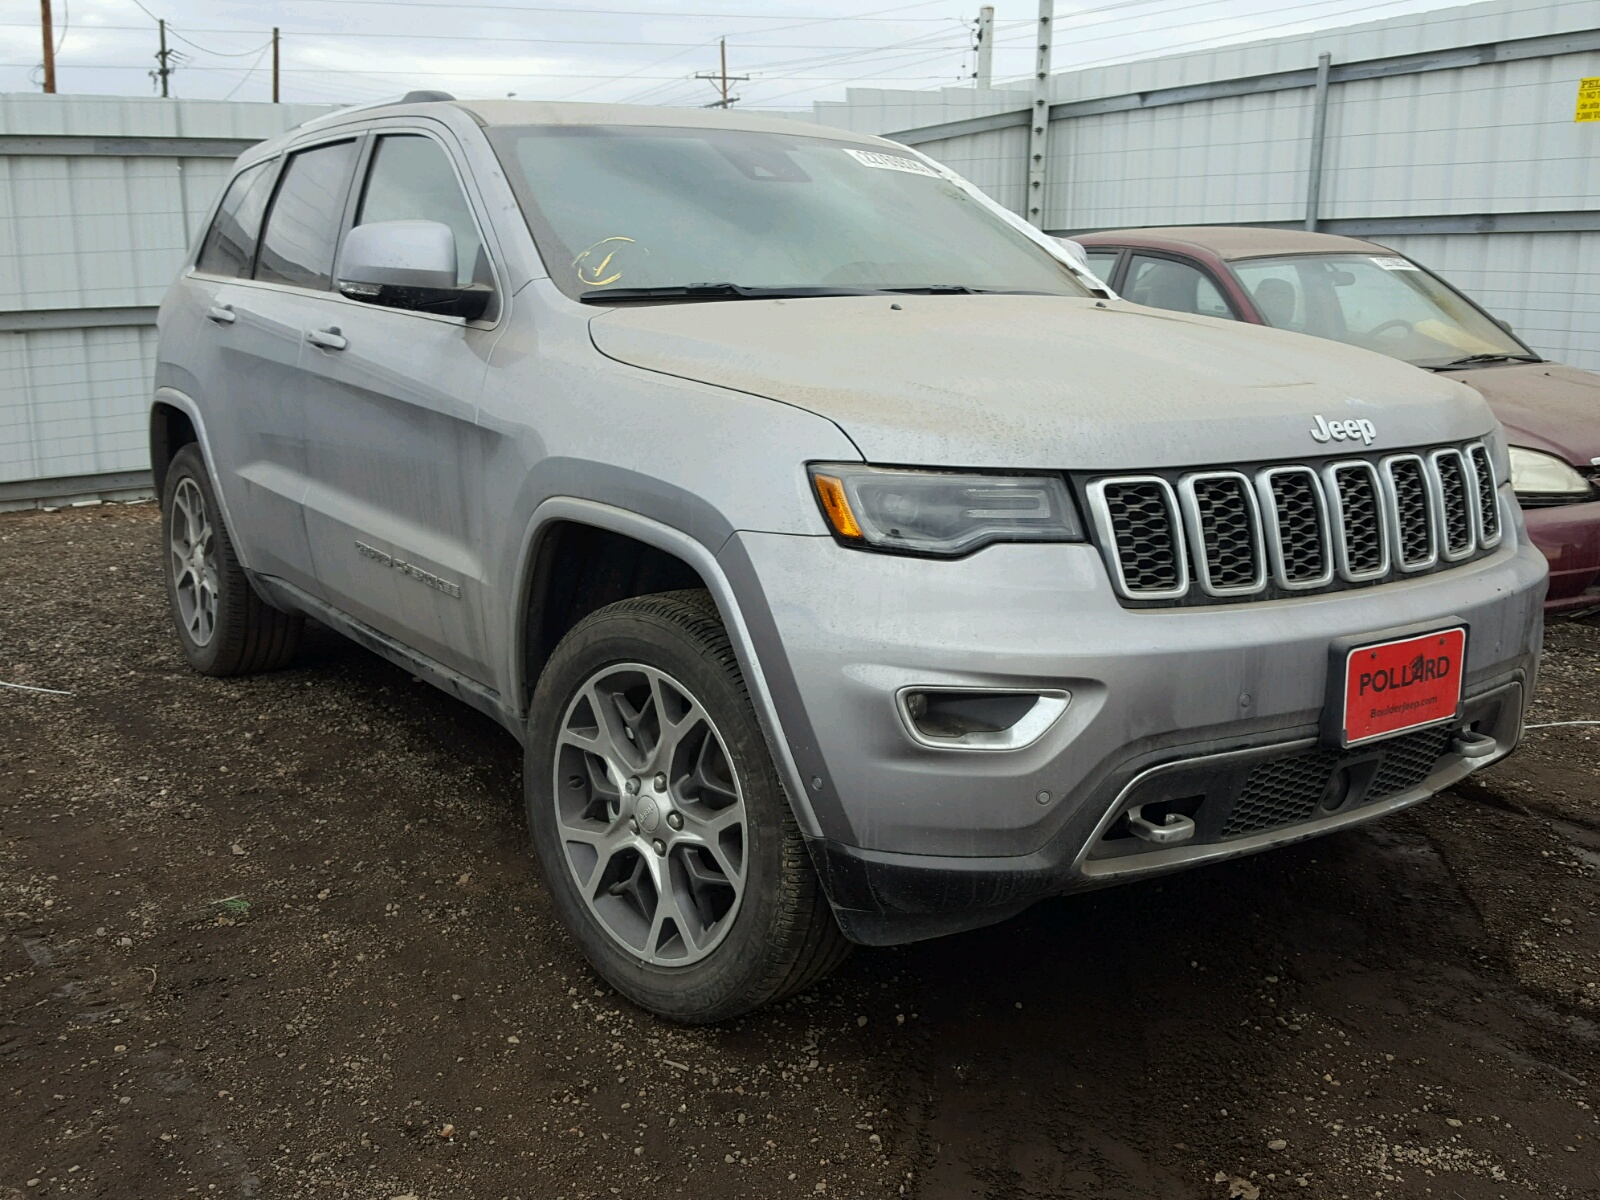 2013 Jeep Grand Cherokee For Sale By Owner In Houston Tx: 2018 Jeep Grand Cherokee For Sale At Copart Brighton, CO